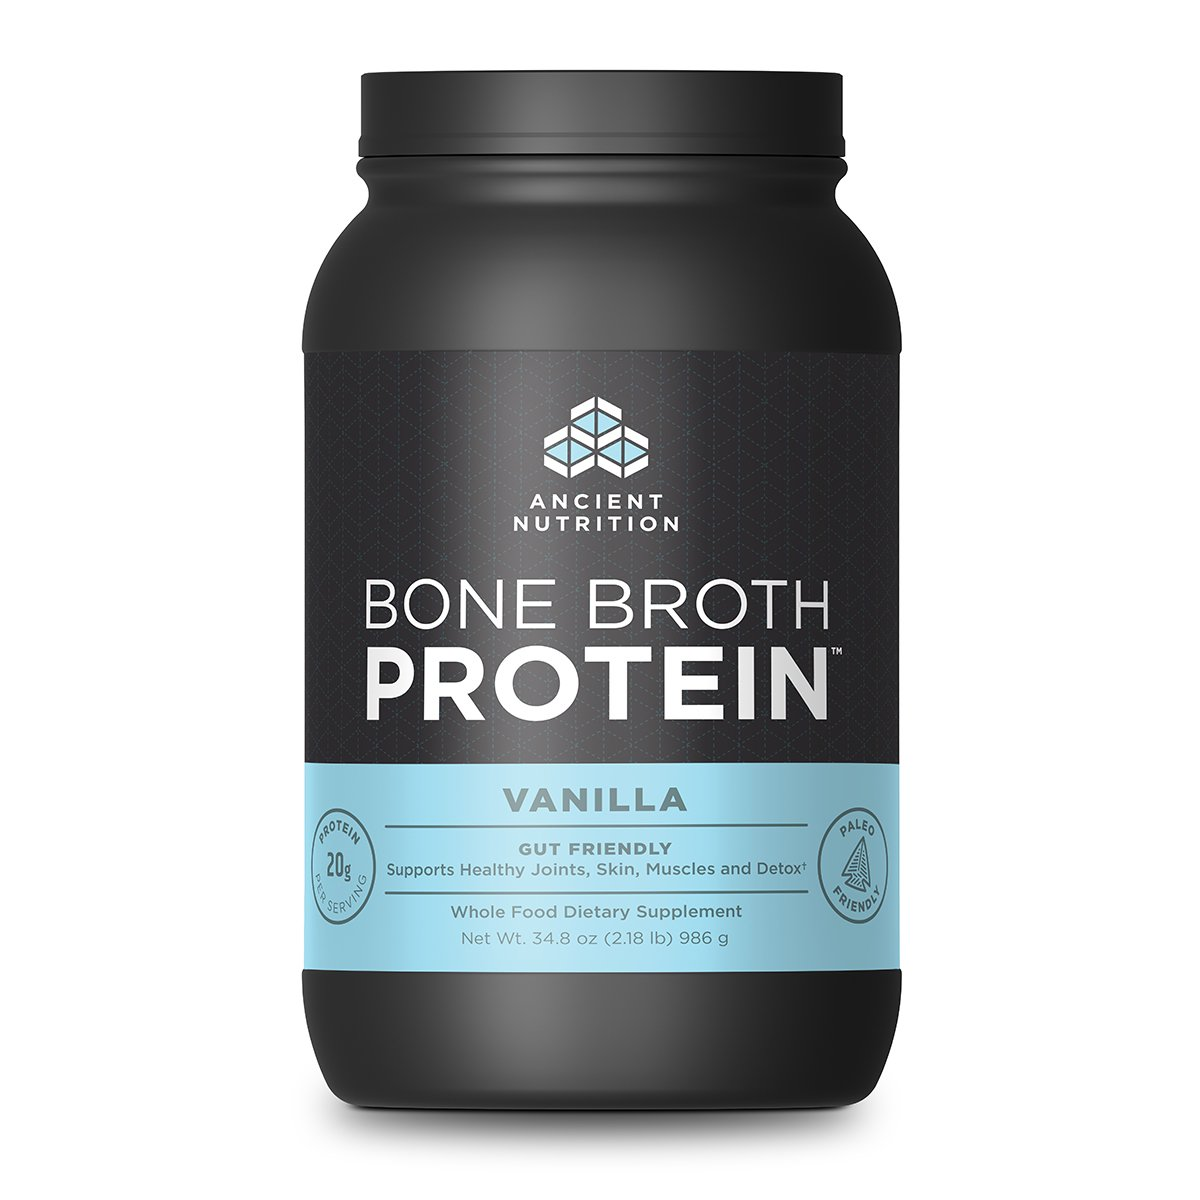 Ancient Nutrition Bone Broth Protein Powder, Vanilla Flavor, 40 Servings Size by Ancient Nutrition (Image #1)